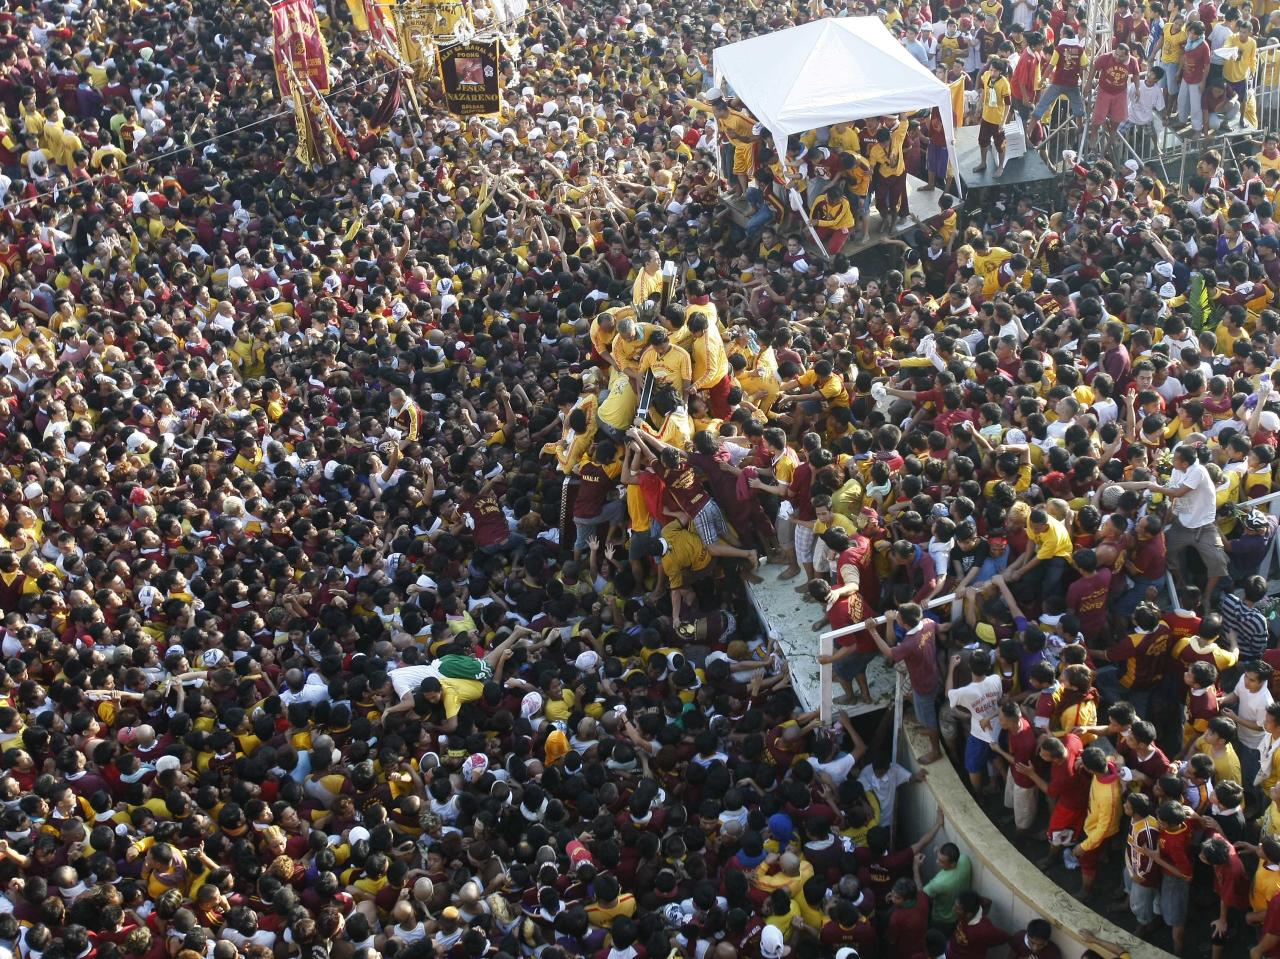 Barefoot Catholic devotees jostle to kiss the cross being borne by the wooden statue of the Black Nazarene, center, as they gather at the Rizal Park Monday, Jan. 9, 2012 during it's annual festival in Manila, Philippines. More than 3 million devotees paraded the charred Christ statue, believed to have healing powers, through the Philippine capital despite a warning from President Benigno Aquino III that terrorists might target the gathering. (AP Photo/Bullit Marquez)